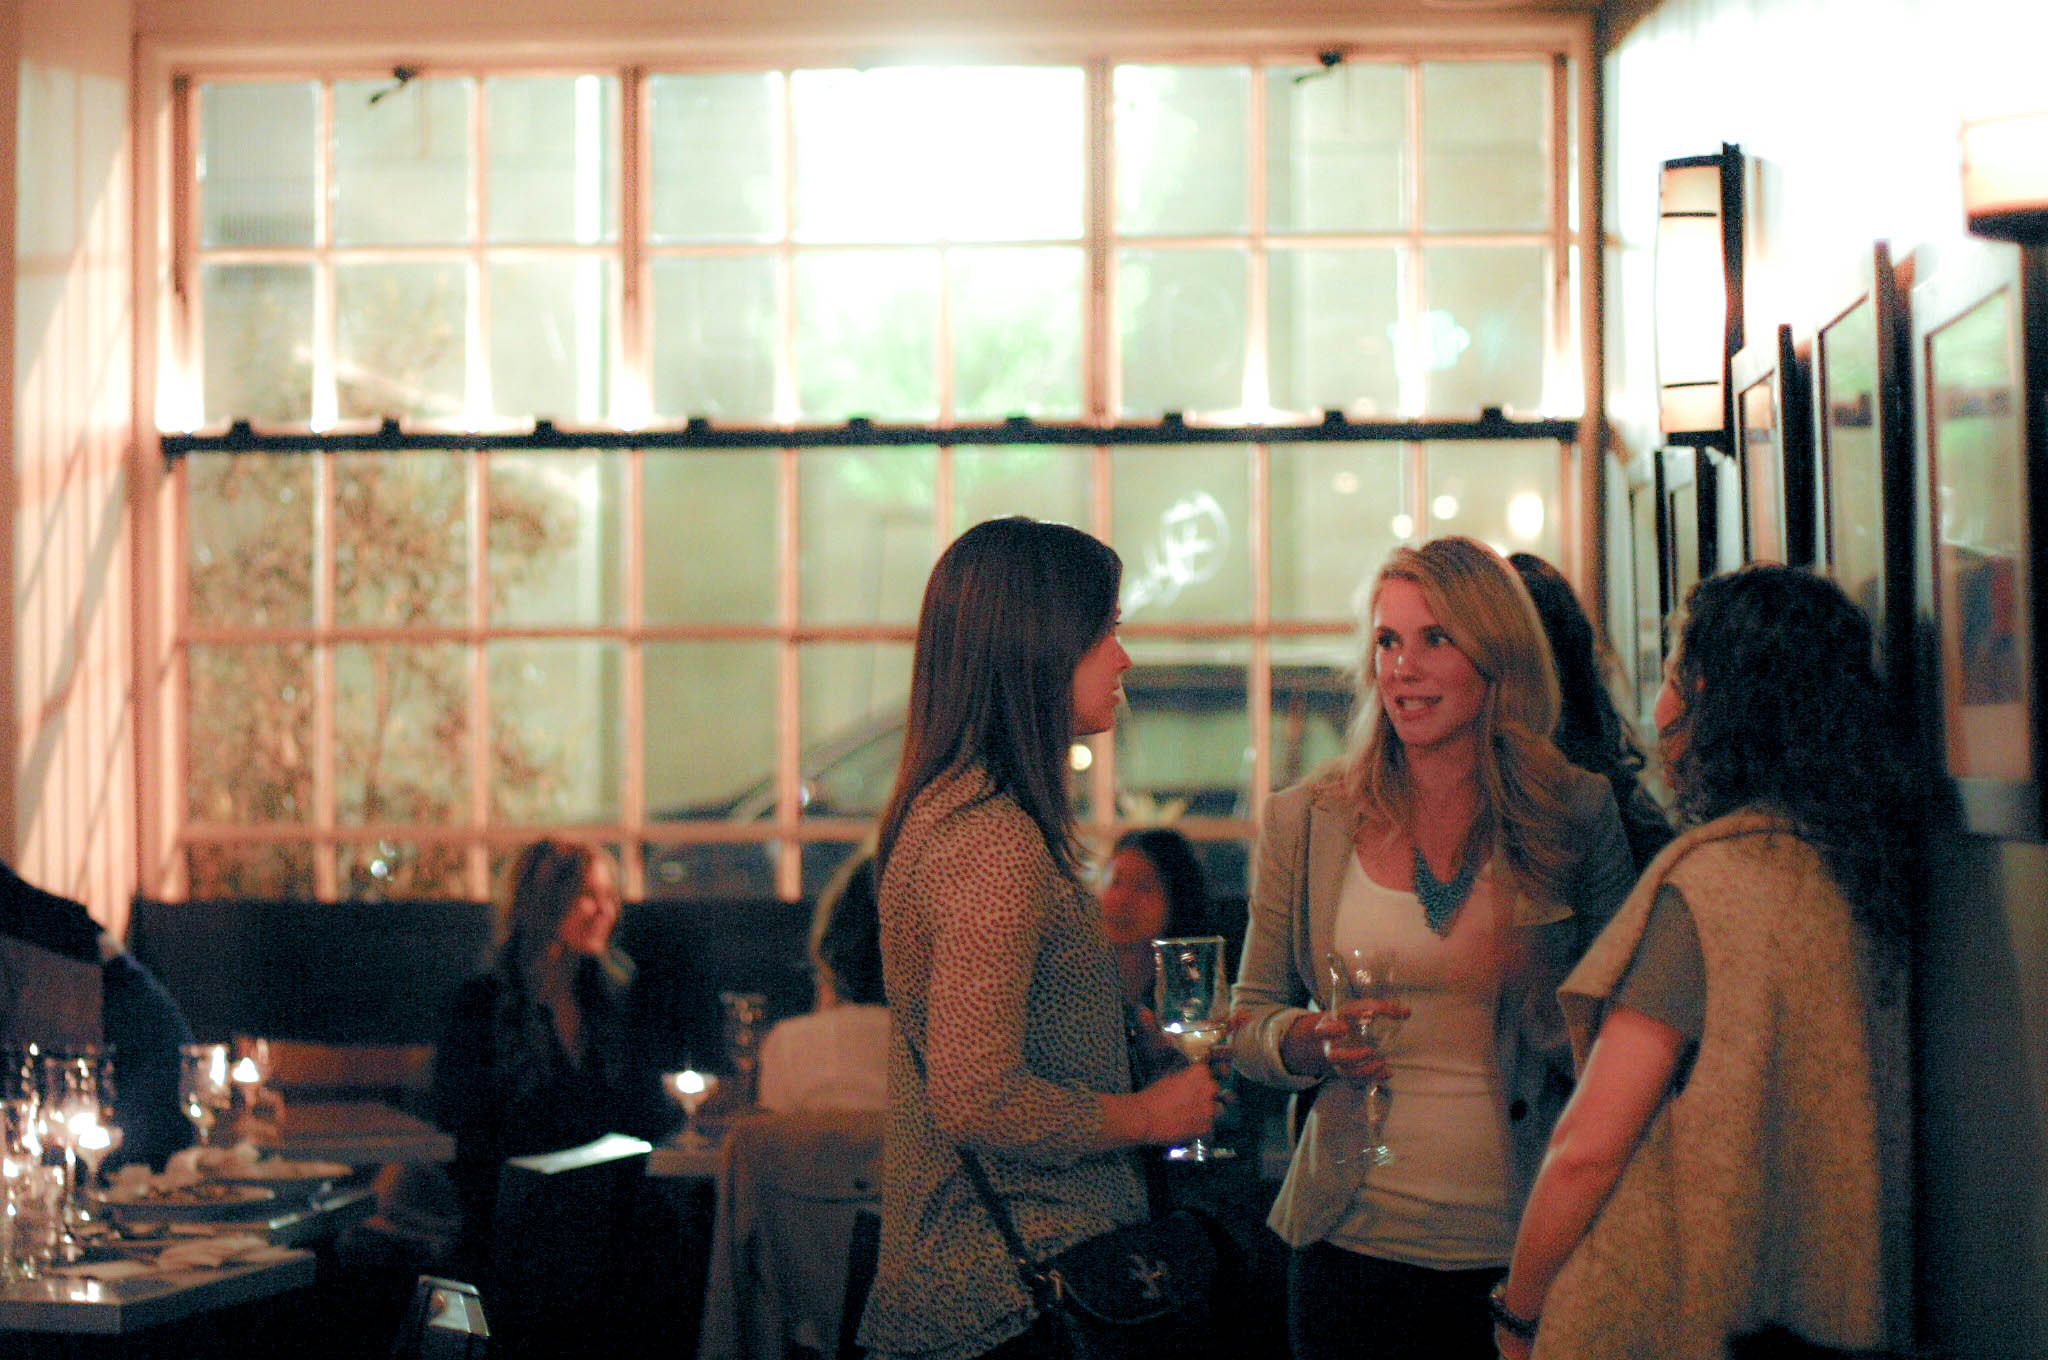 Organizing a Bloggers' Meet-Up Party? Check Out These 5 Tips